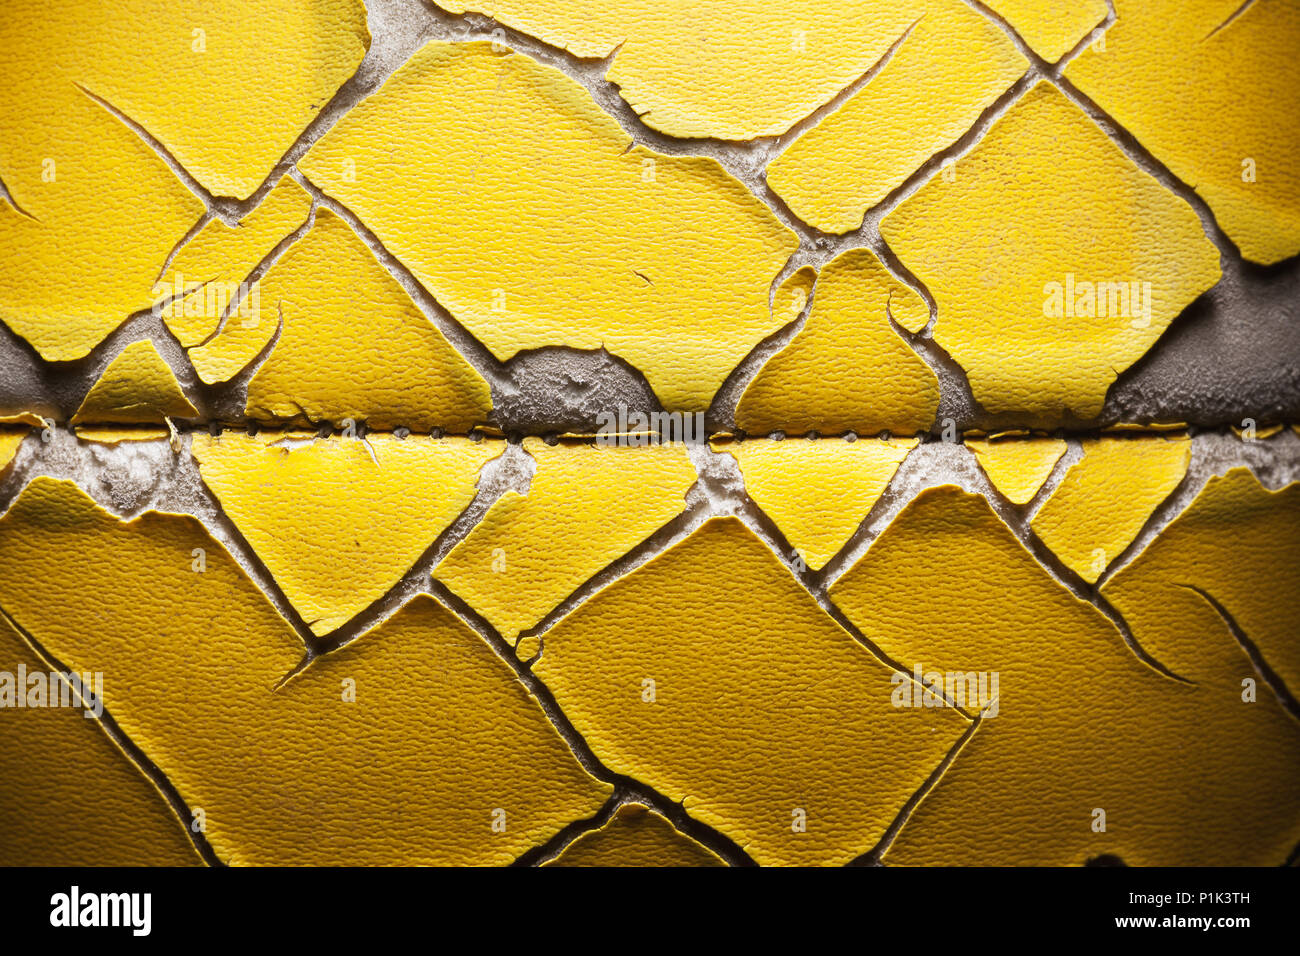 Volleyball Abstract Stock Photos Volleyball Abstract: Volleyball Abstract Stock Photos & Volleyball Abstract